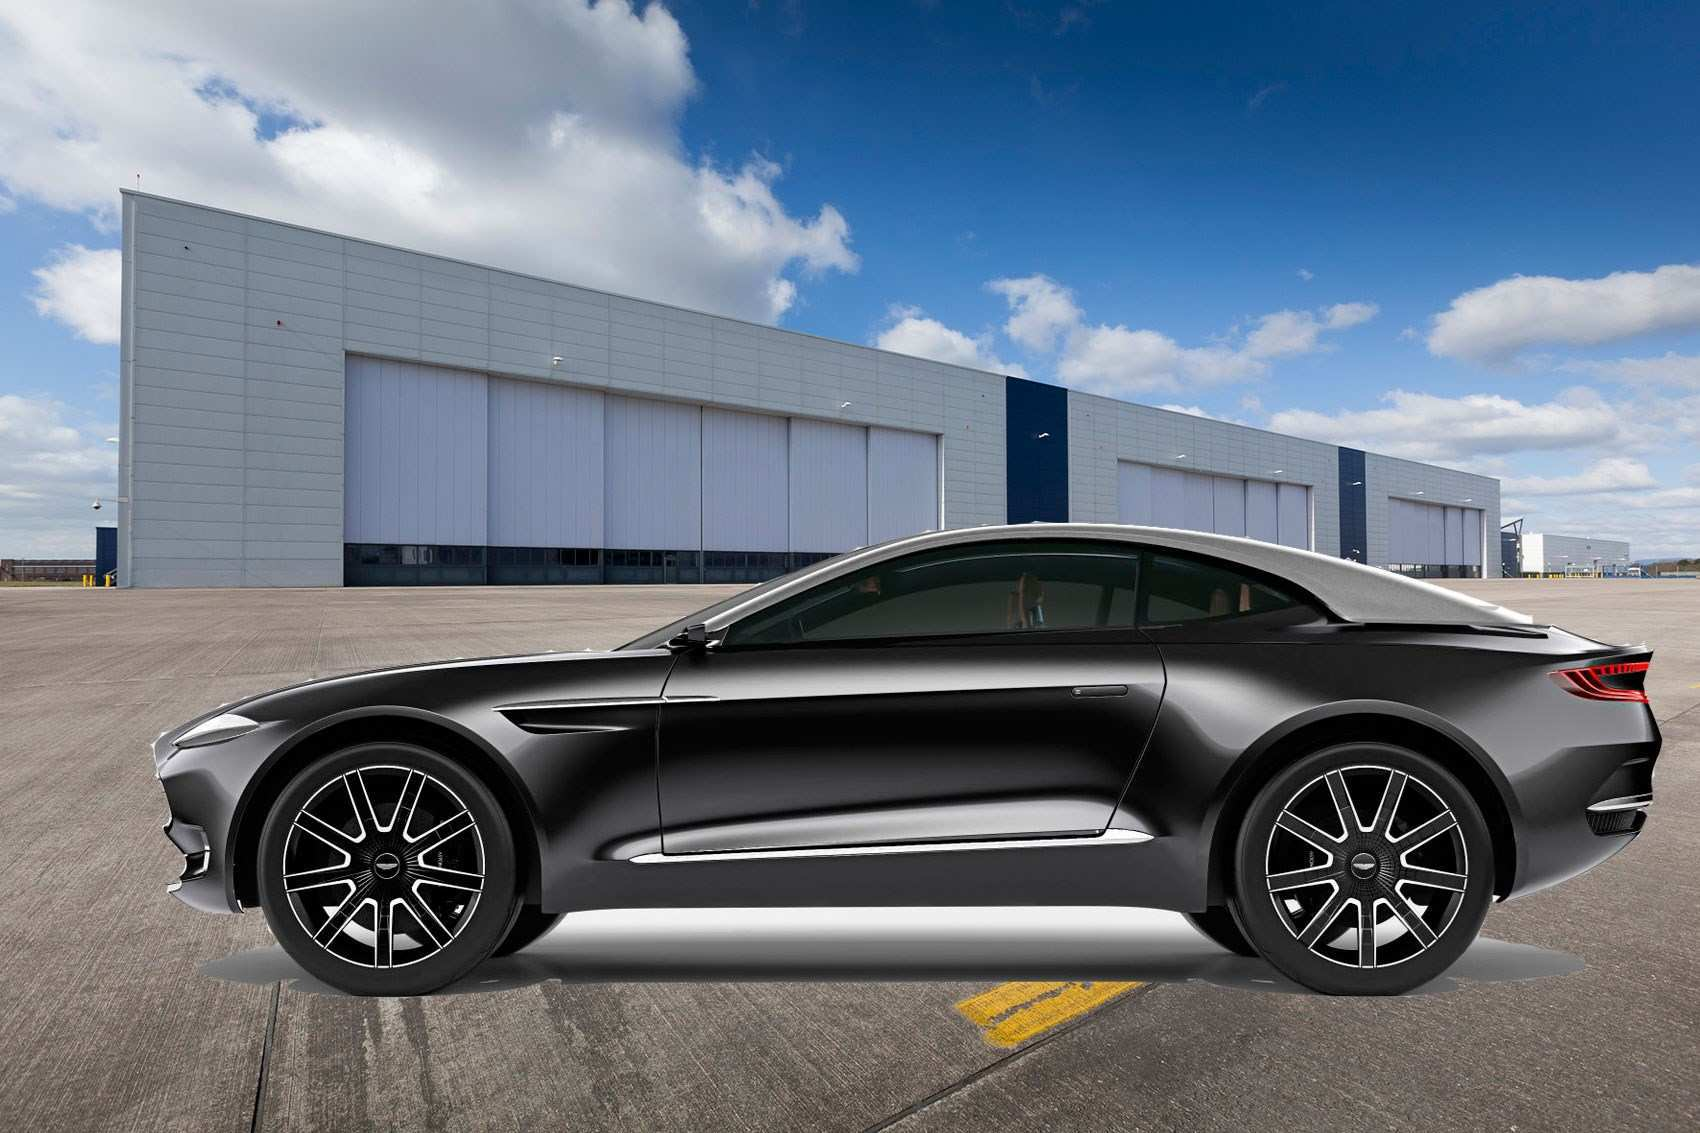 81 The 2020 Aston Martin Dbx Reviews for 2020 Aston Martin Dbx